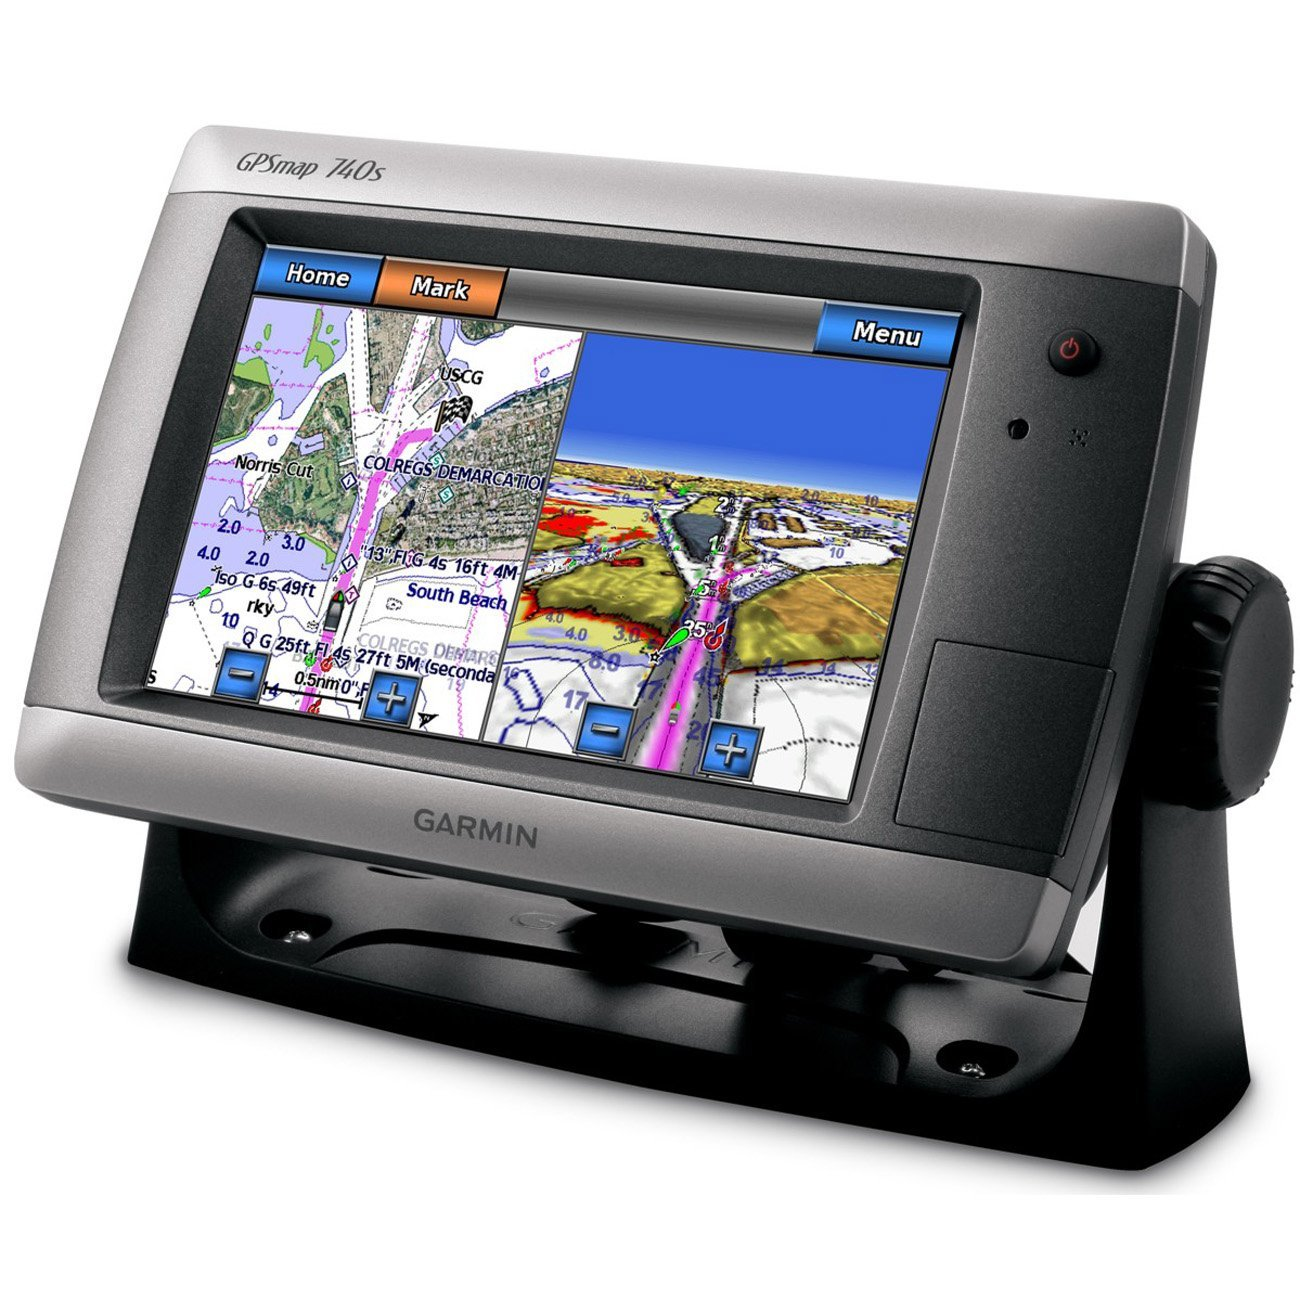 Garmin 740s Review - Fish Finder Guy